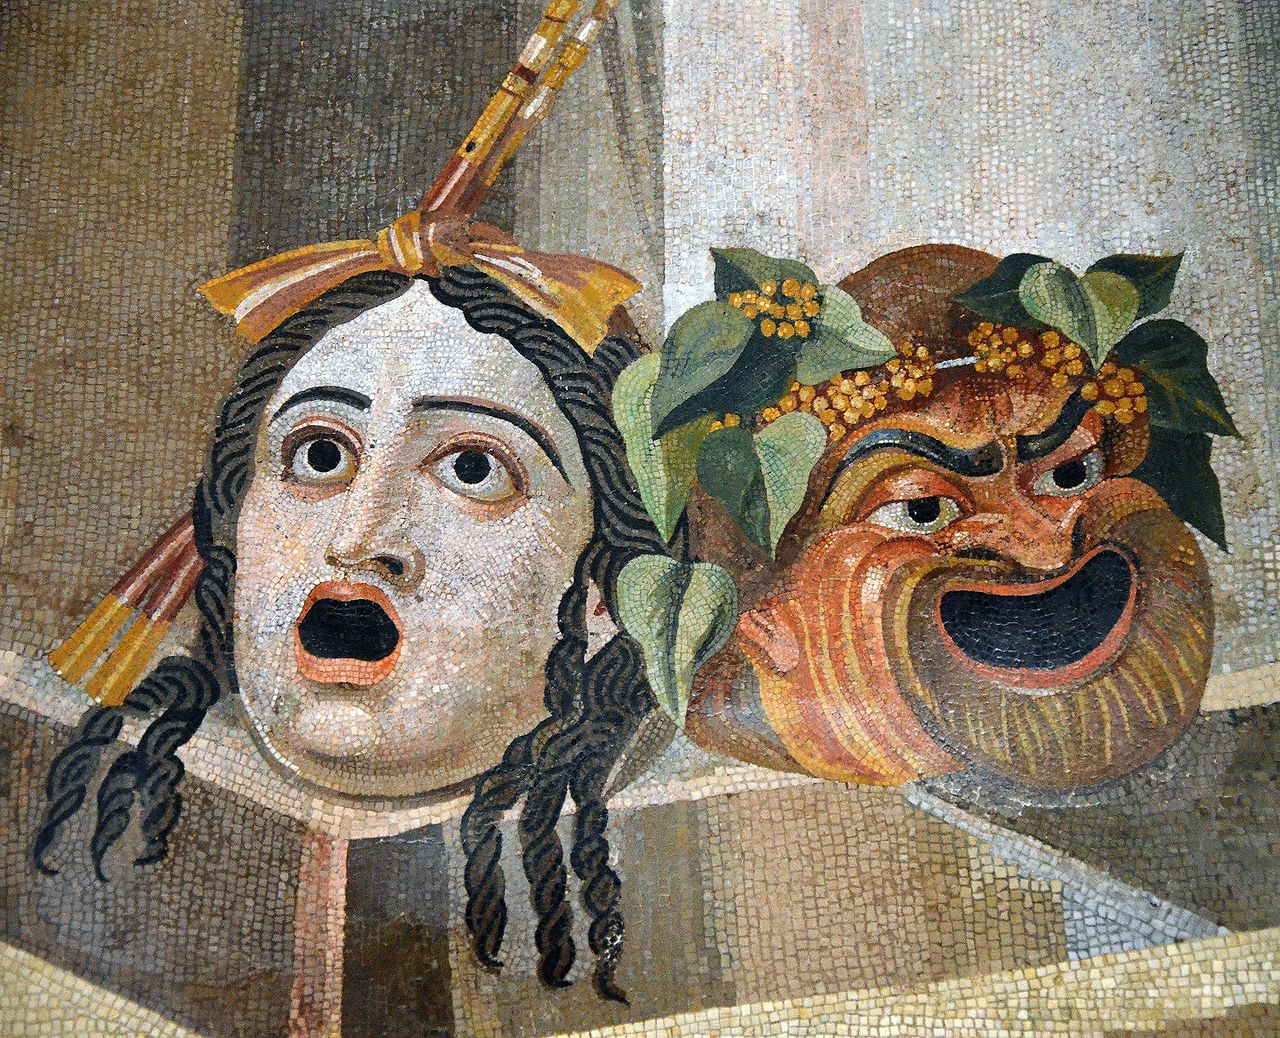 content/images/img-19-20/programme/chapitre-6/Mosaic_depicting_theatrical_masks_of_Tragedy_and_Comedy_Thermae_Decianae.jpg